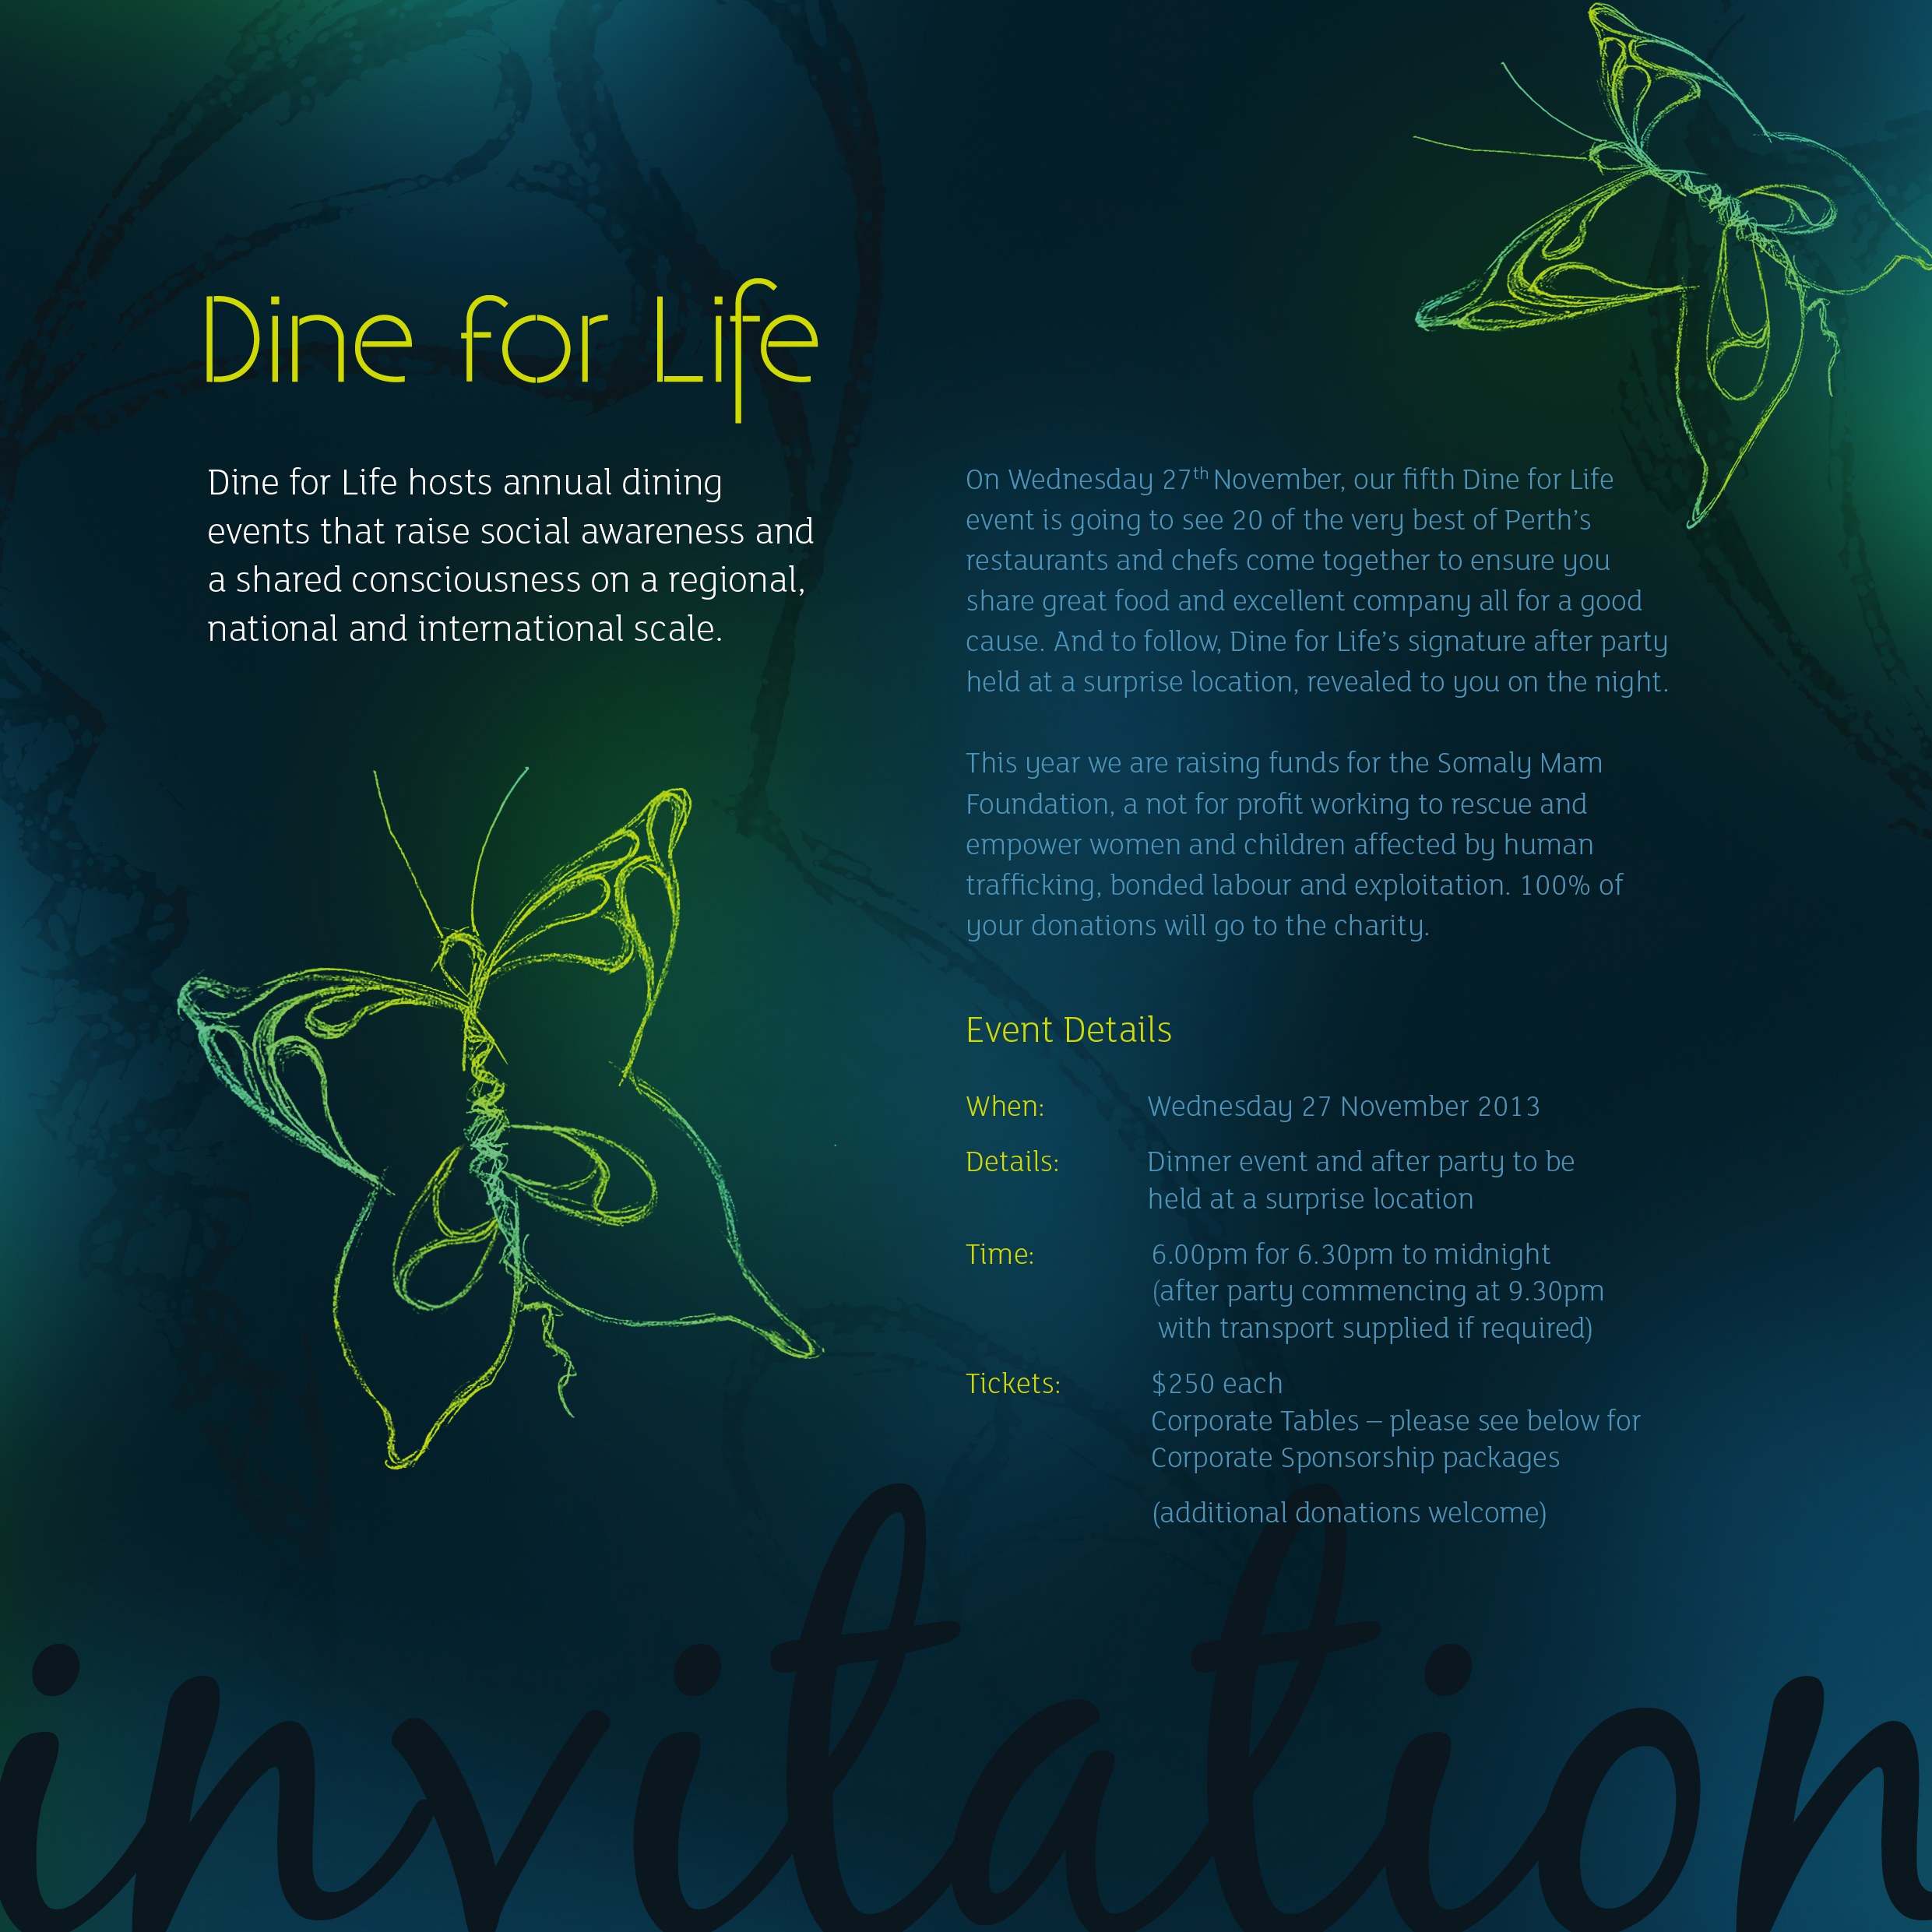 Dine For Life Dinner invitation Perth